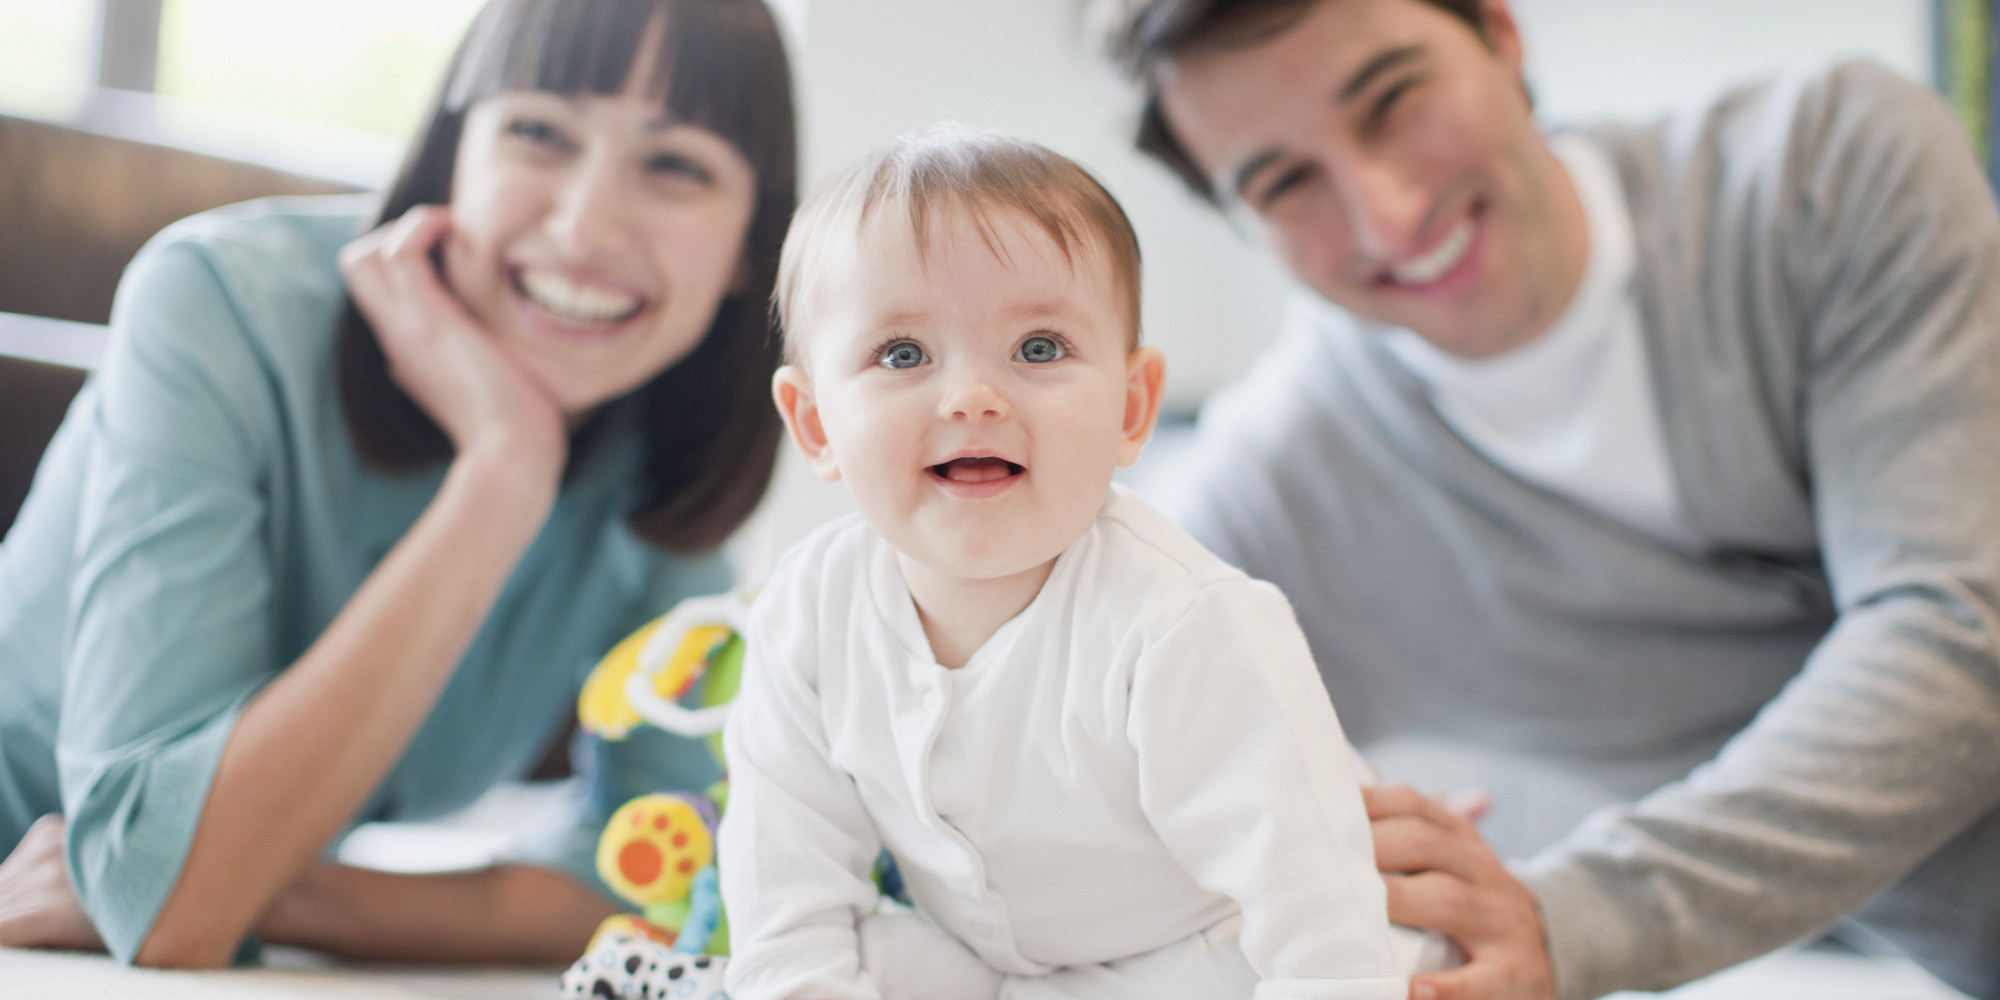 BerryClever Helps Parents Make the Right Product Choices For Their Loved Ones!